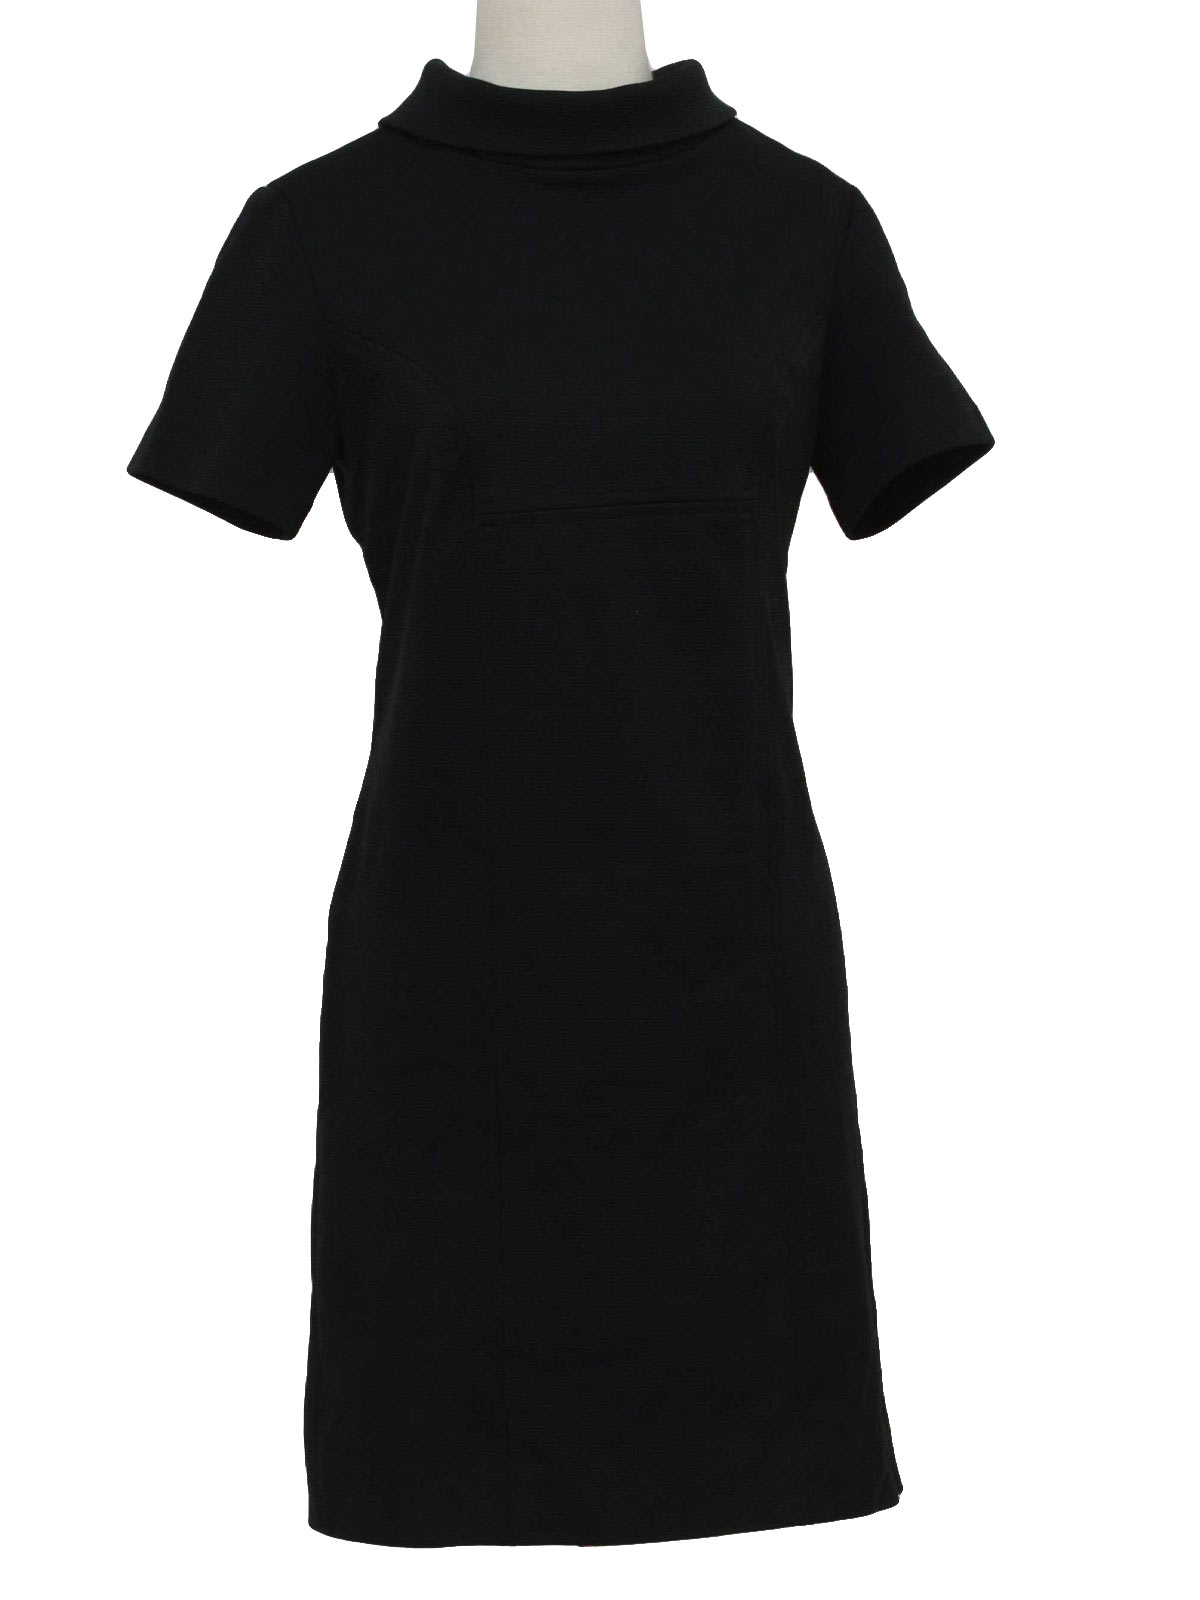 Shop for short sleeve turtleneck dress online at Target. Free shipping on purchases over $35 and save 5% every day with your Target REDcard.